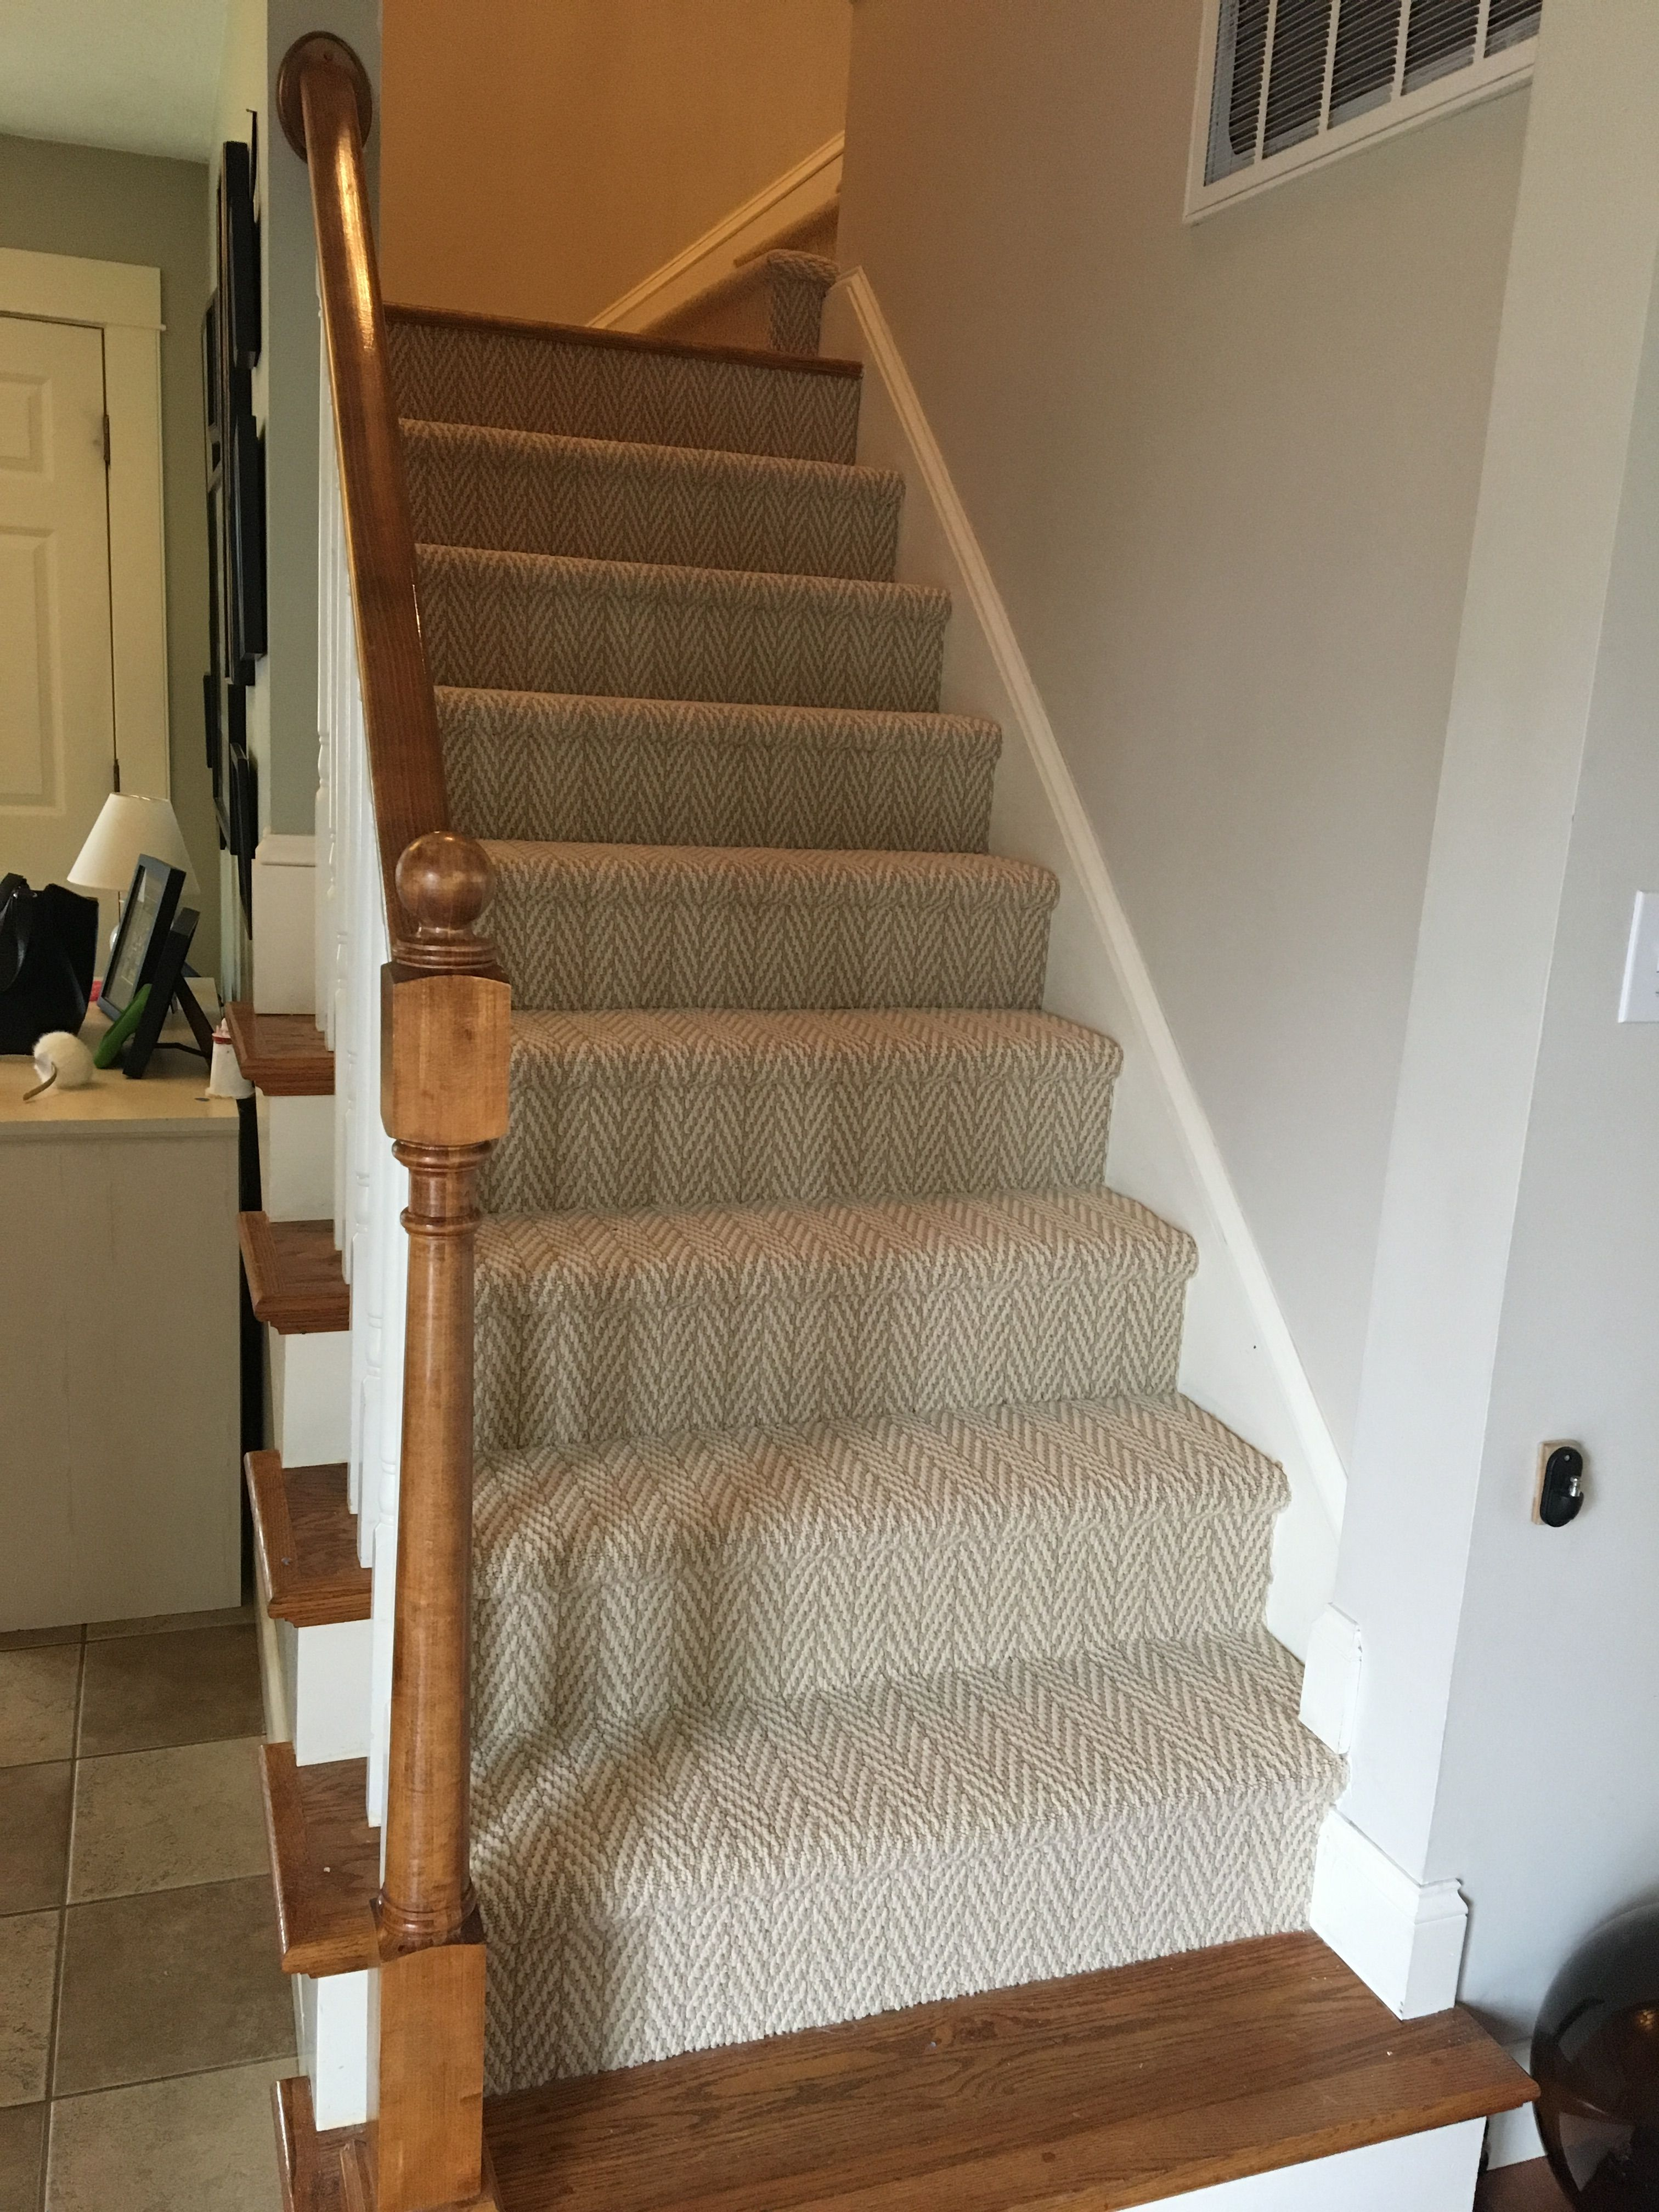 Lowes Stainmaster Apparent Beauty Whisper Berber Carpet Berber   Carpet Runners For Stairs Lowes   Patterned Carpet   Stainmaster   Berber Carpet   Treads Lowes   Wooden Stairs